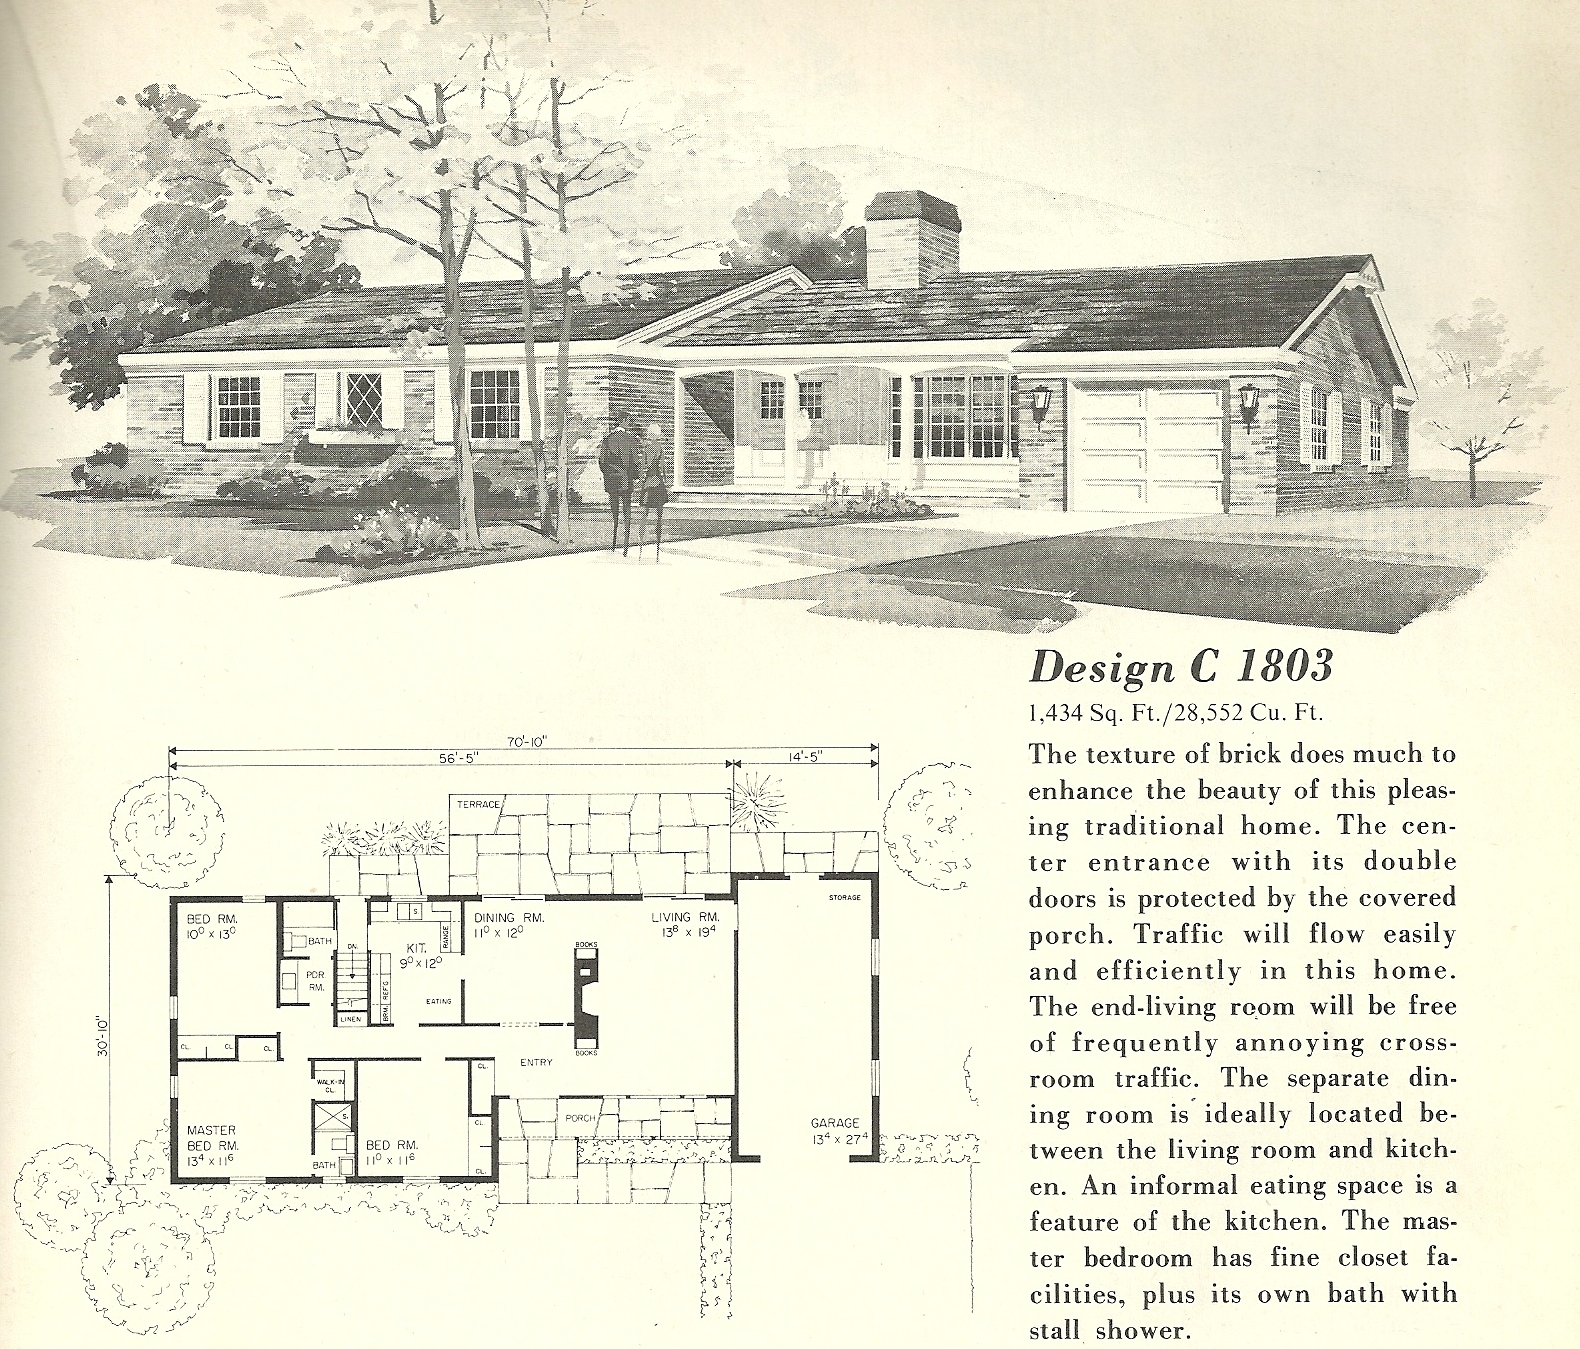 vintage house plans 1803 antique alter ego